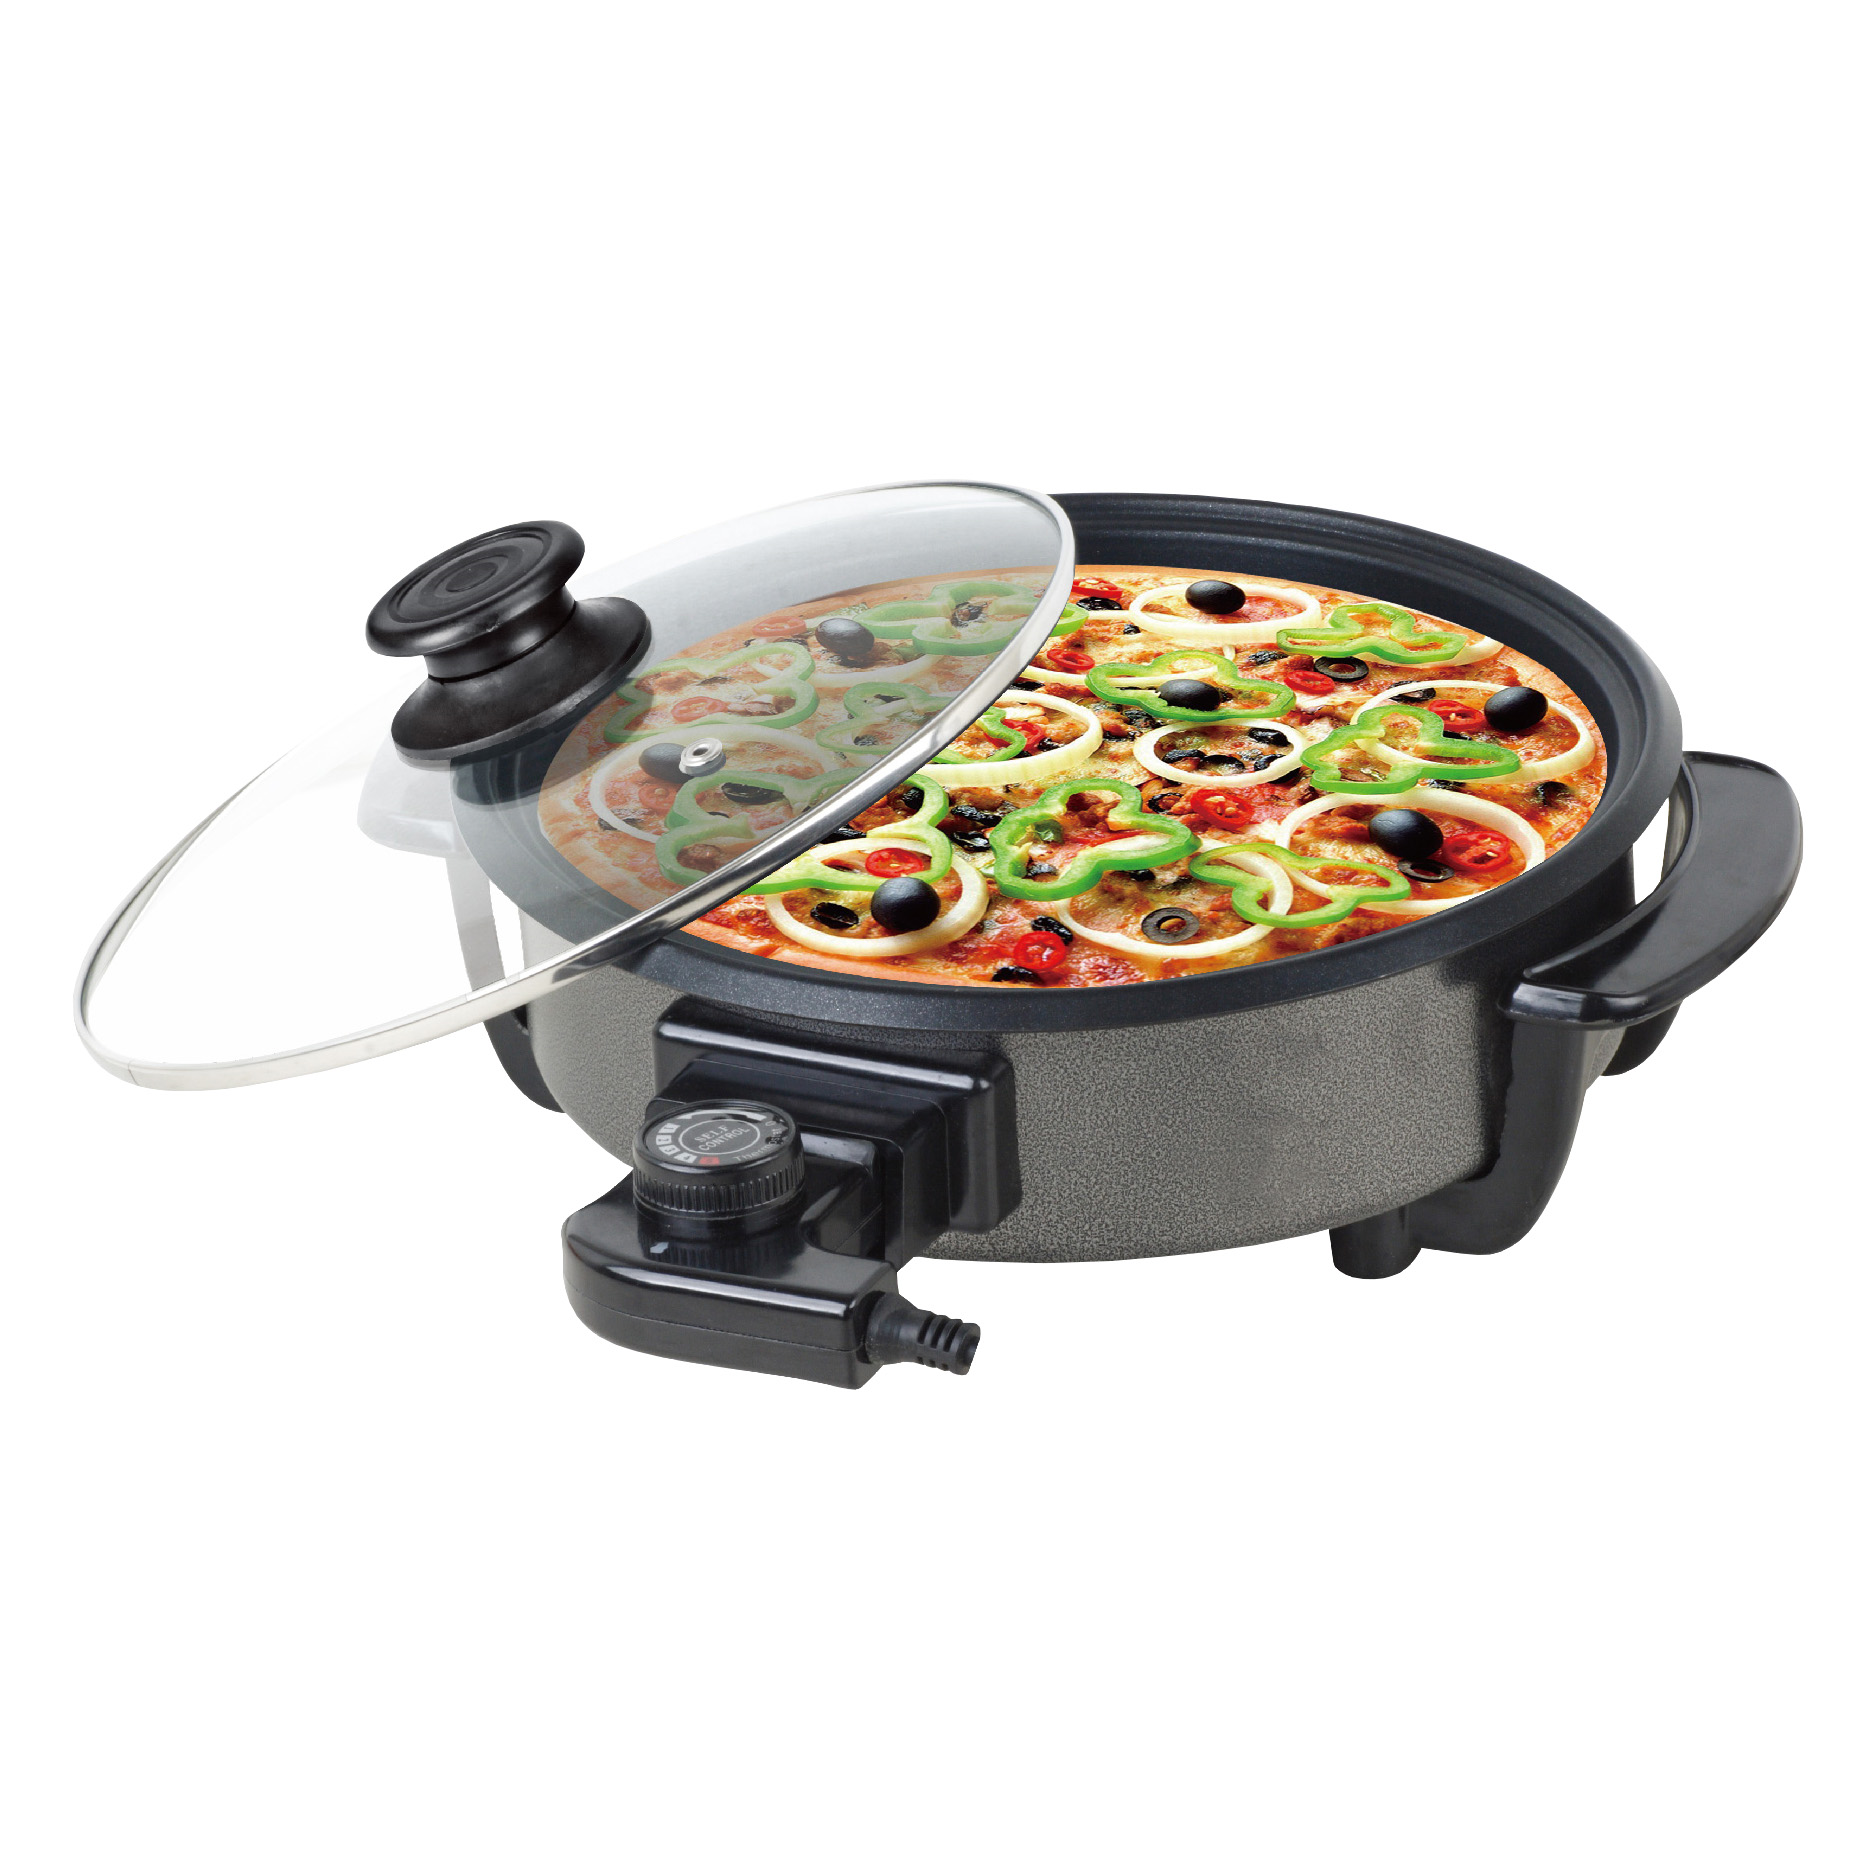 Paellera We Houseware BN3457 pizza pan eléctrica de 42cm 1500W